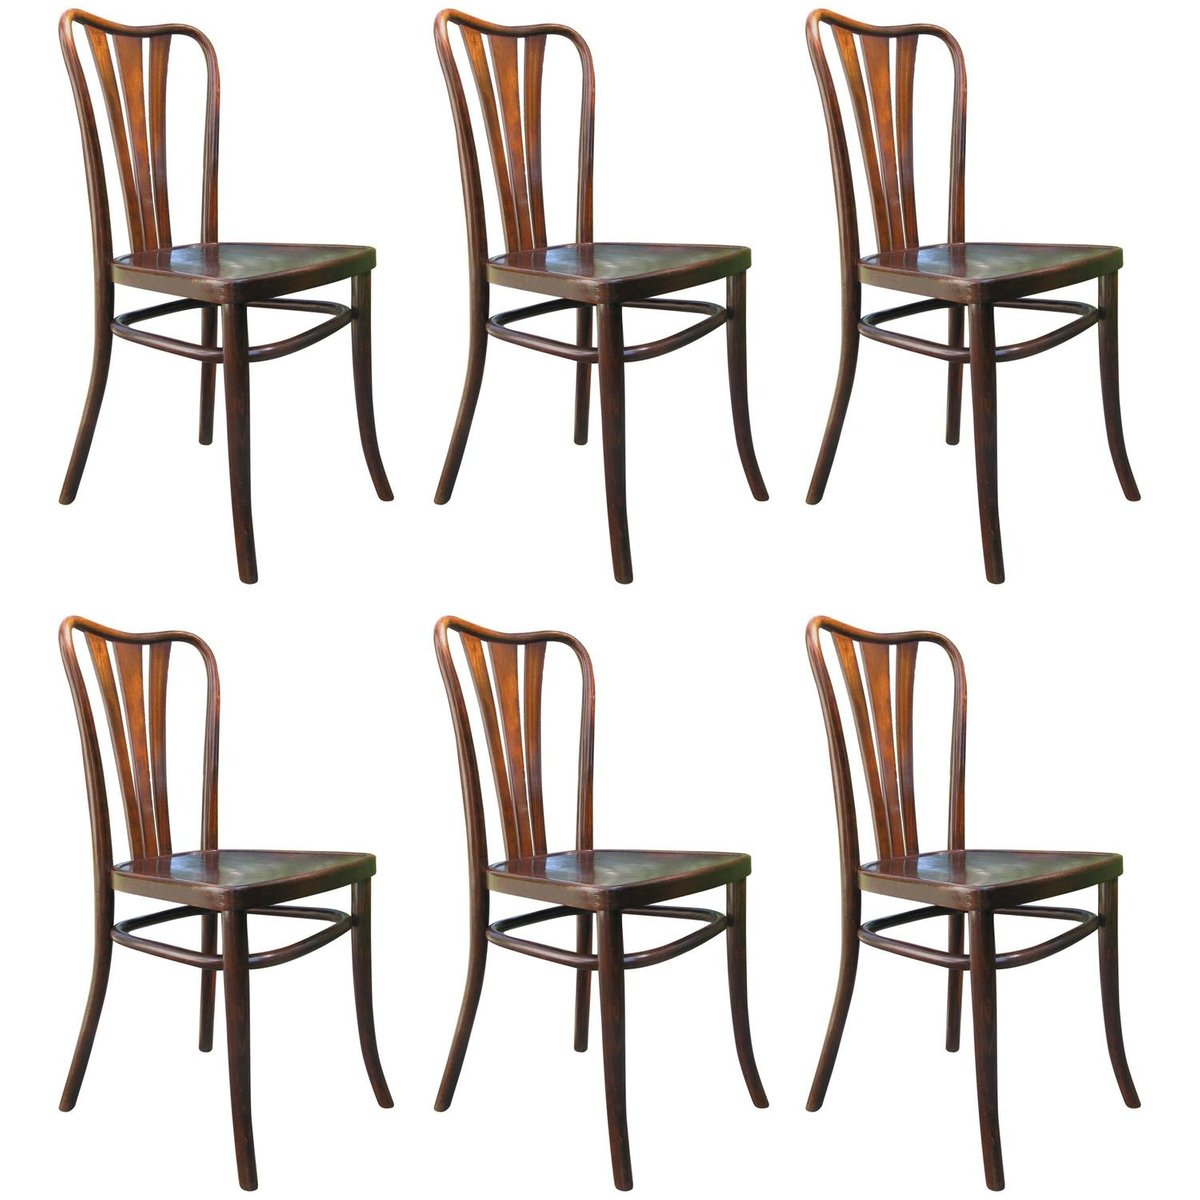 - Vintage Dining Chairs From Thonet, 1930s, Set Of 6 For Sale At Pamono